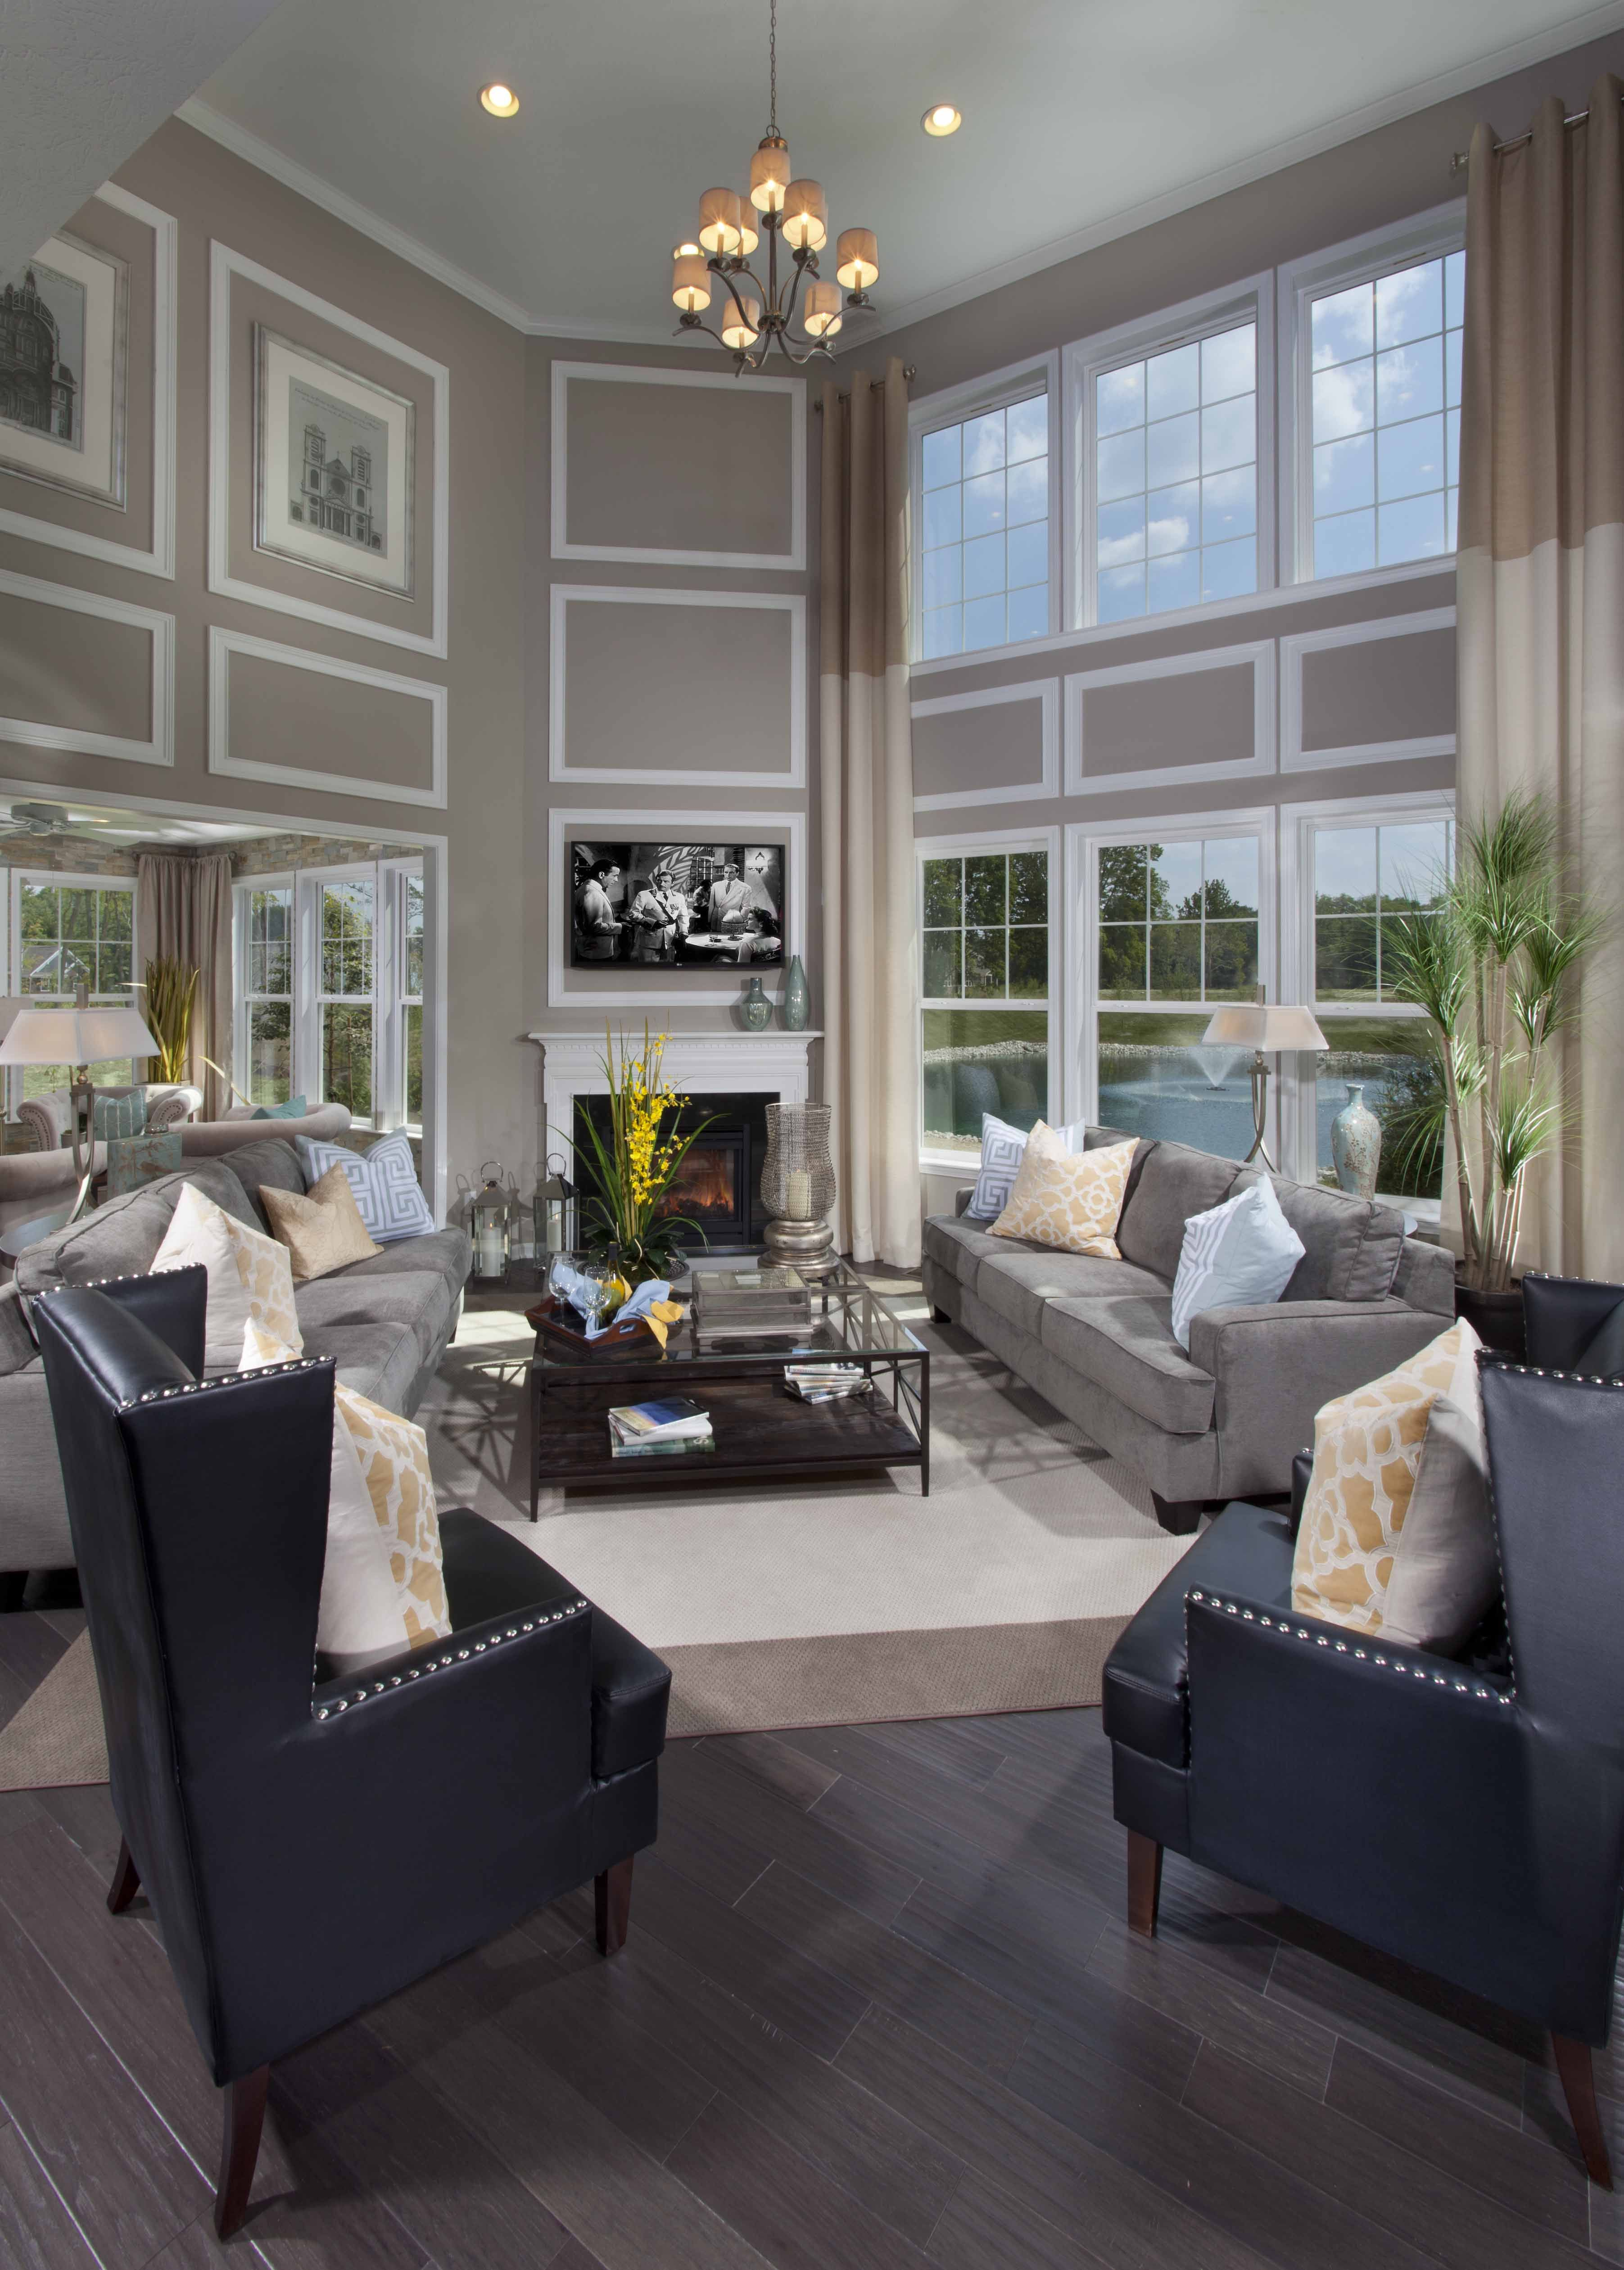 Second Home Decorating Ideas: Southill Model At Blackstone - Great Room …